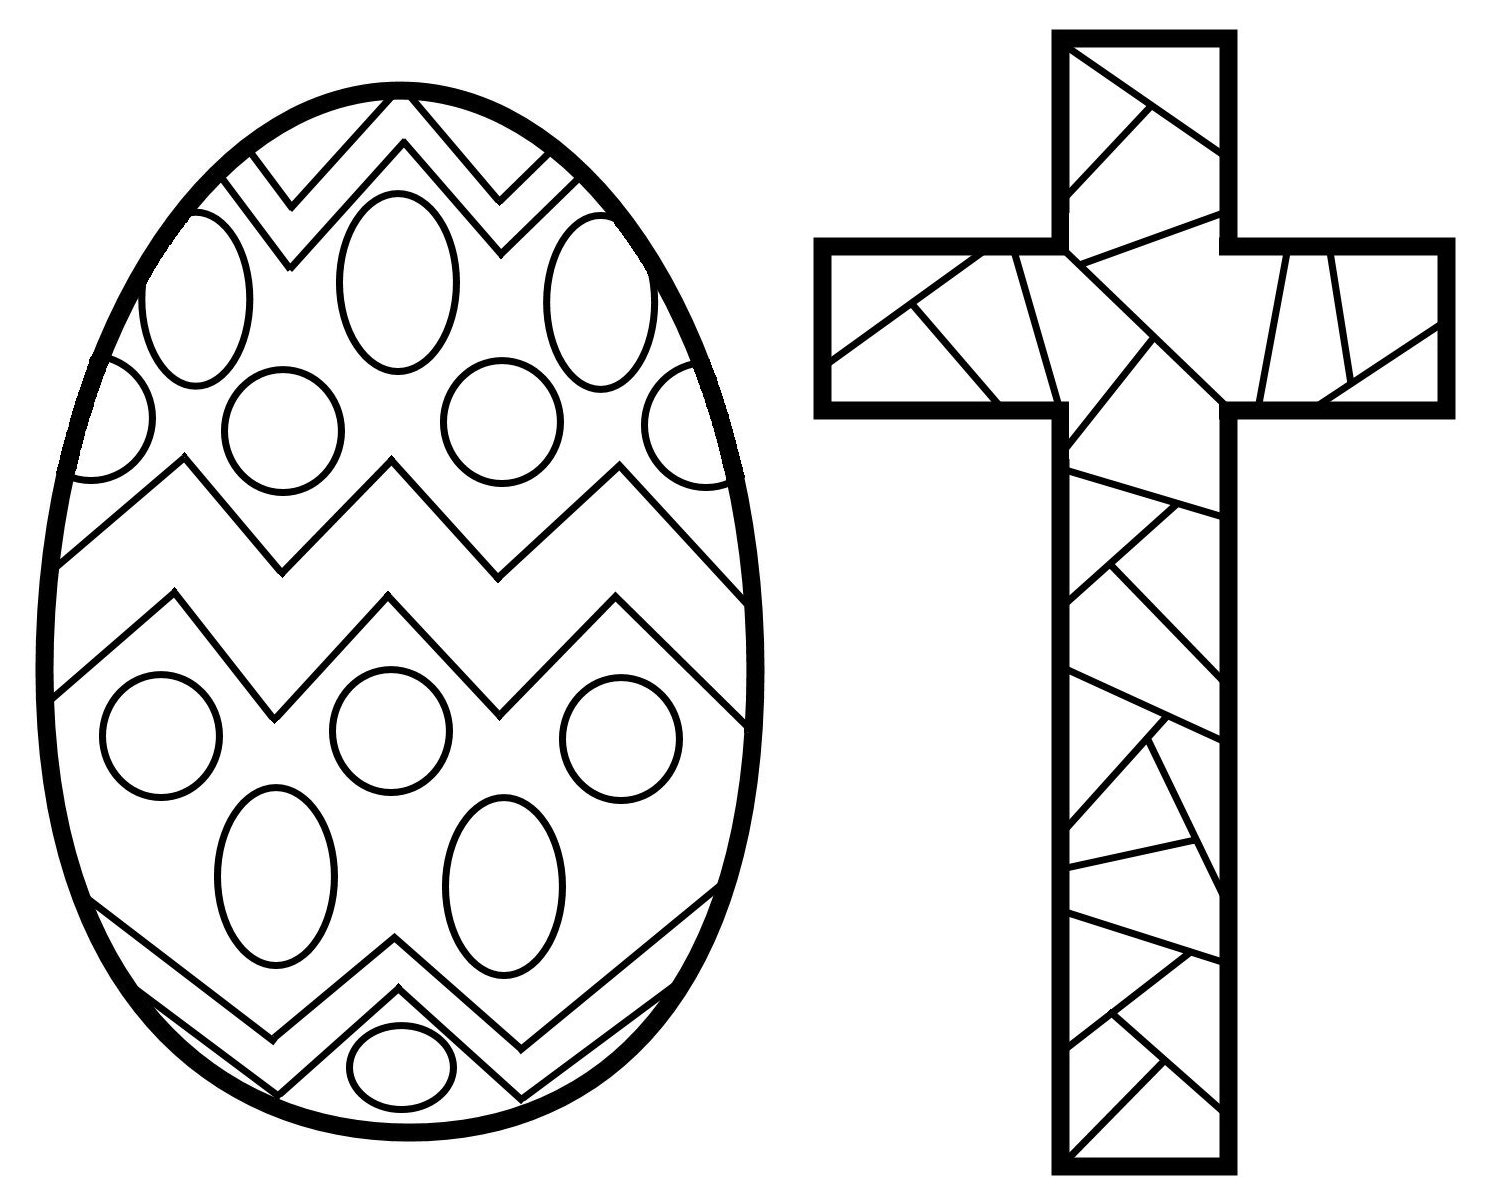 Easter Stained Glass Coloring Pages Free Printable Coloring Pages For Kids Colouring Pages